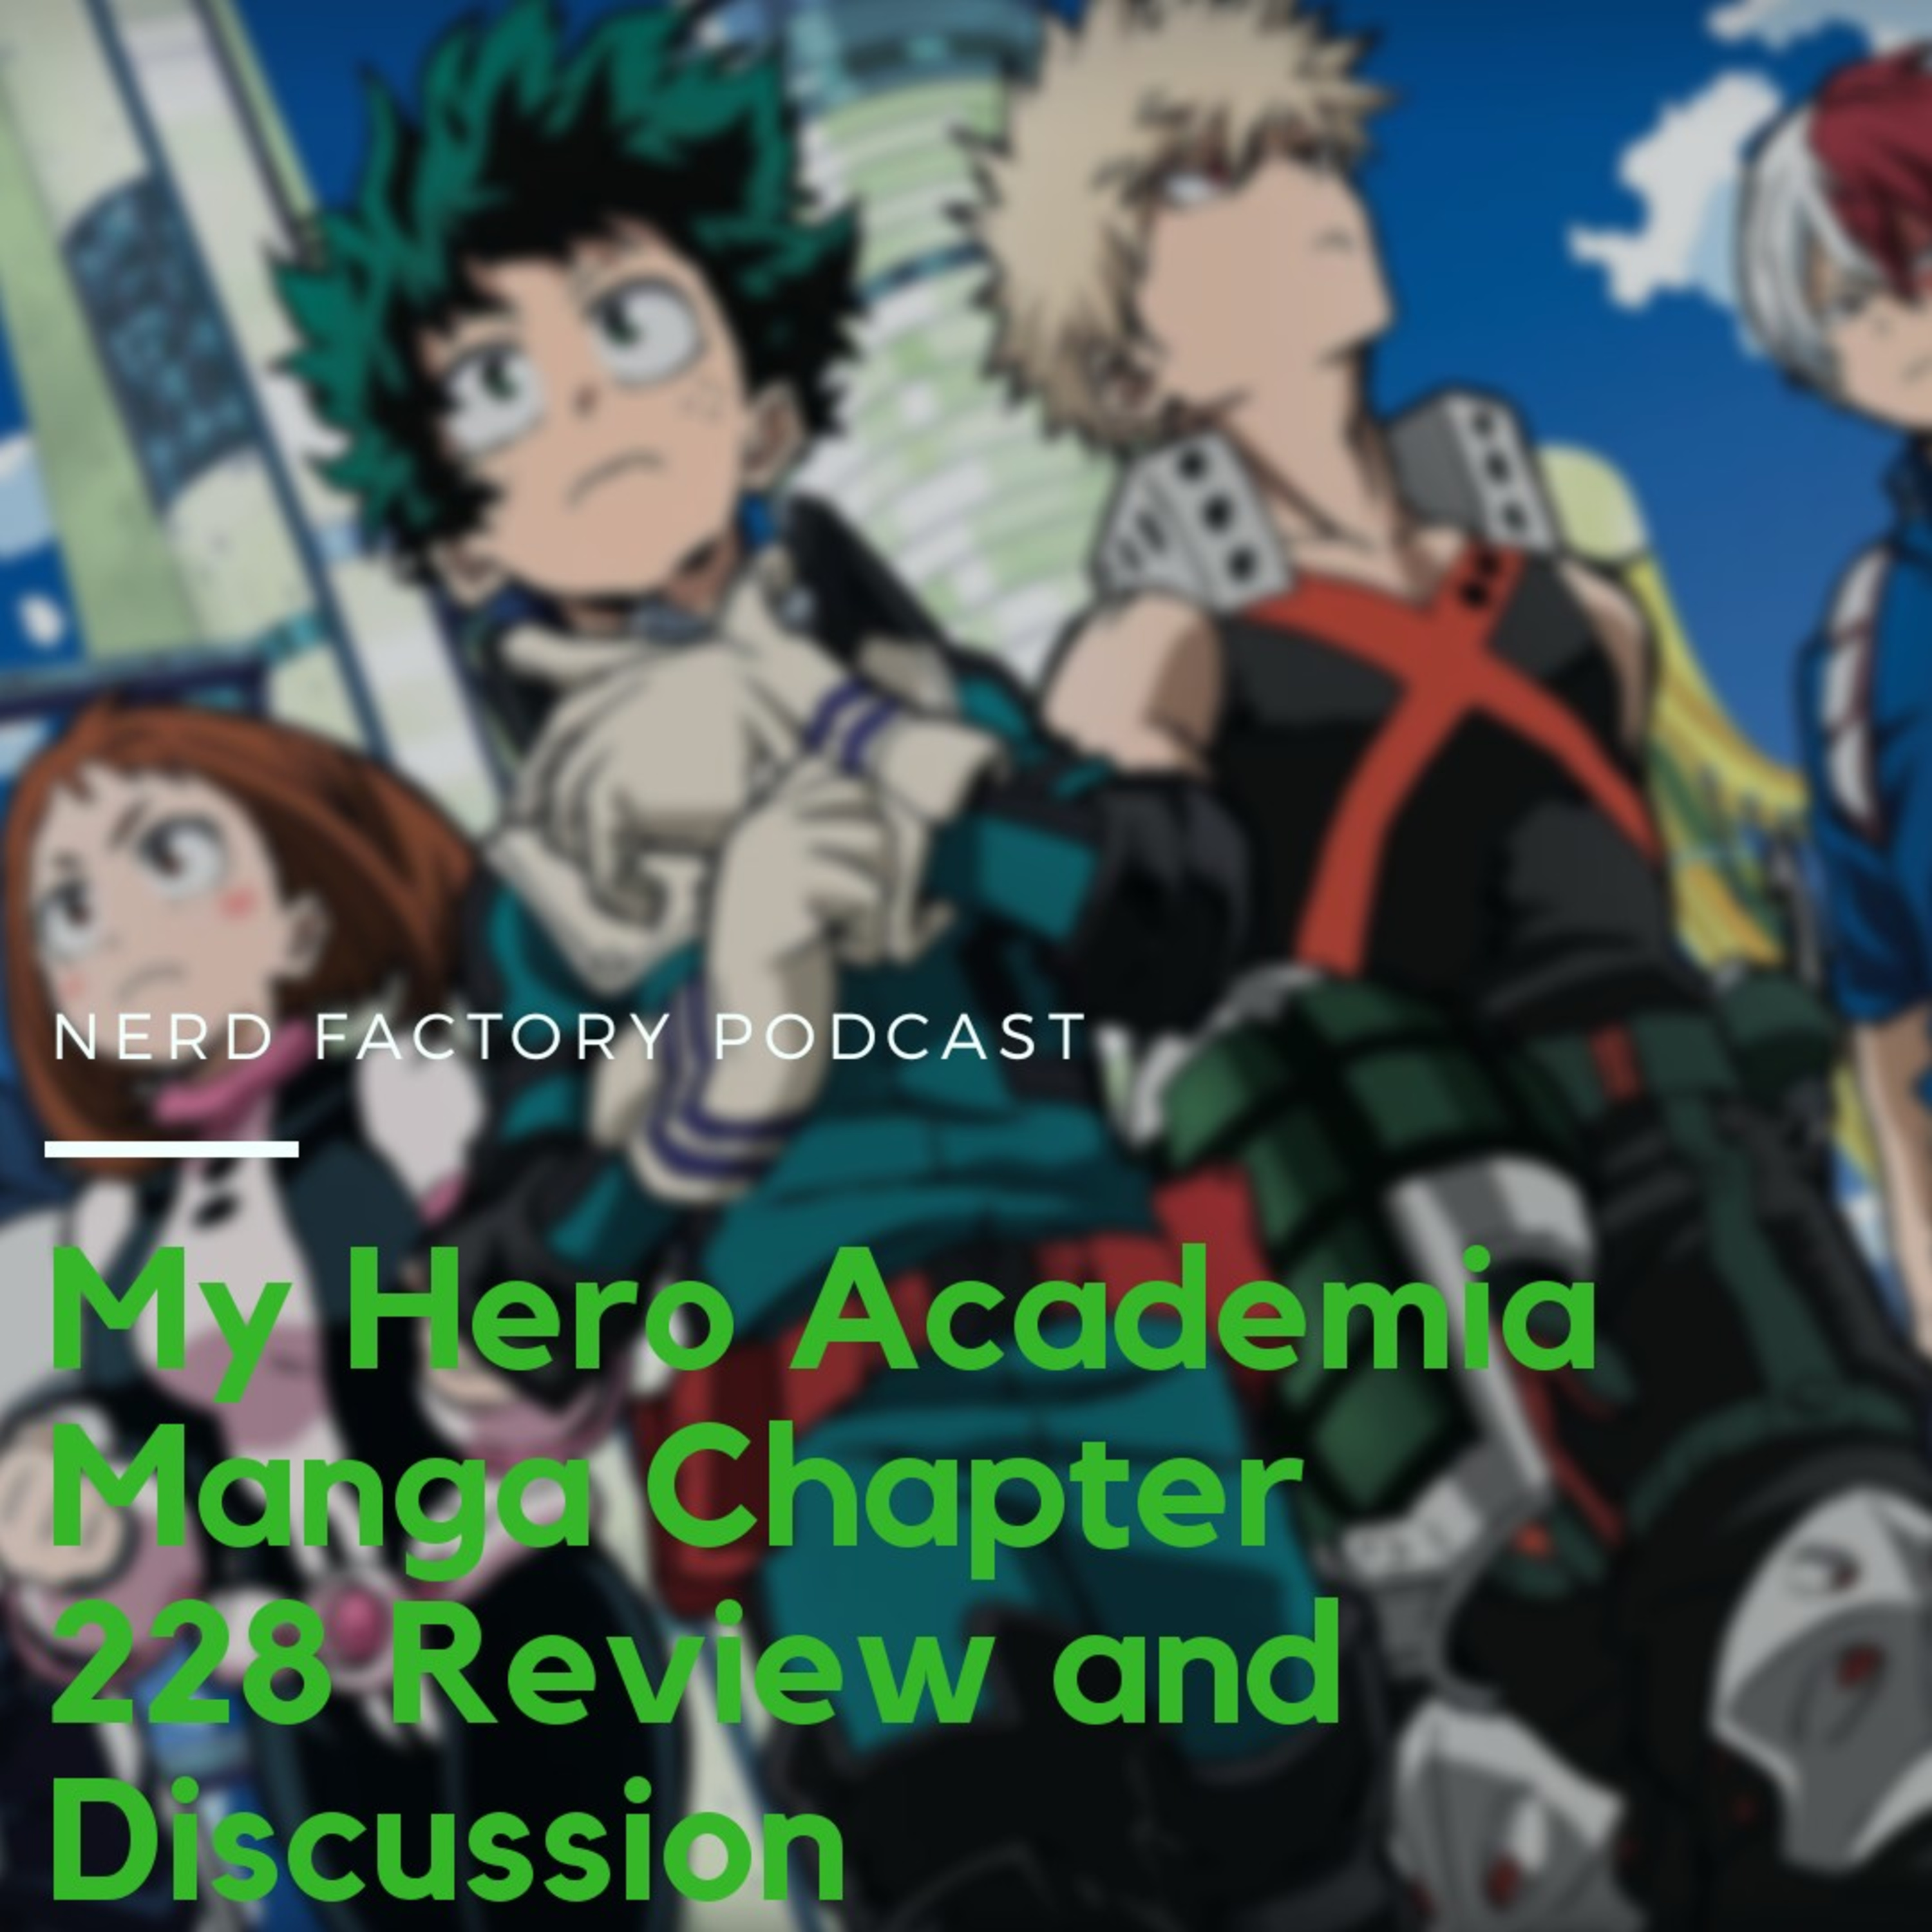 My Hero Academia Manga - Chapter 228 Review and Discussion